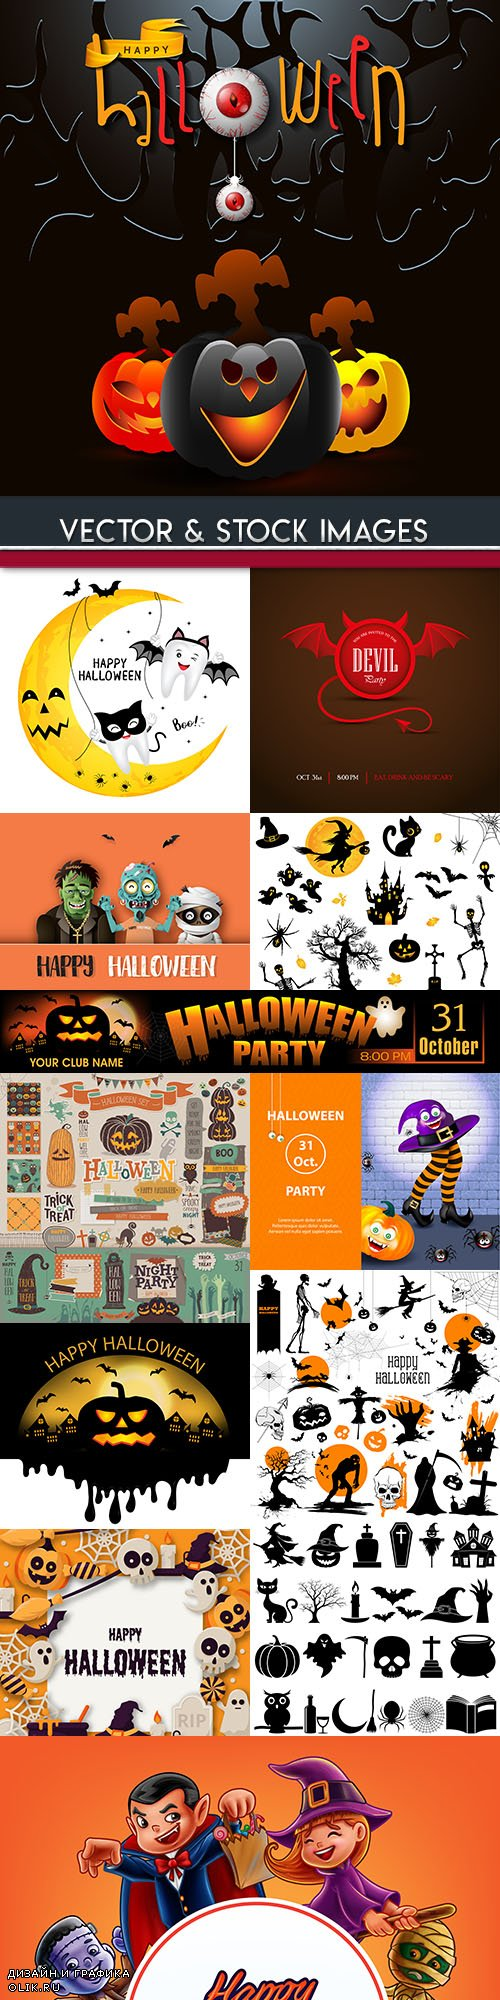 Happy Halloween holiday illustration collection 39